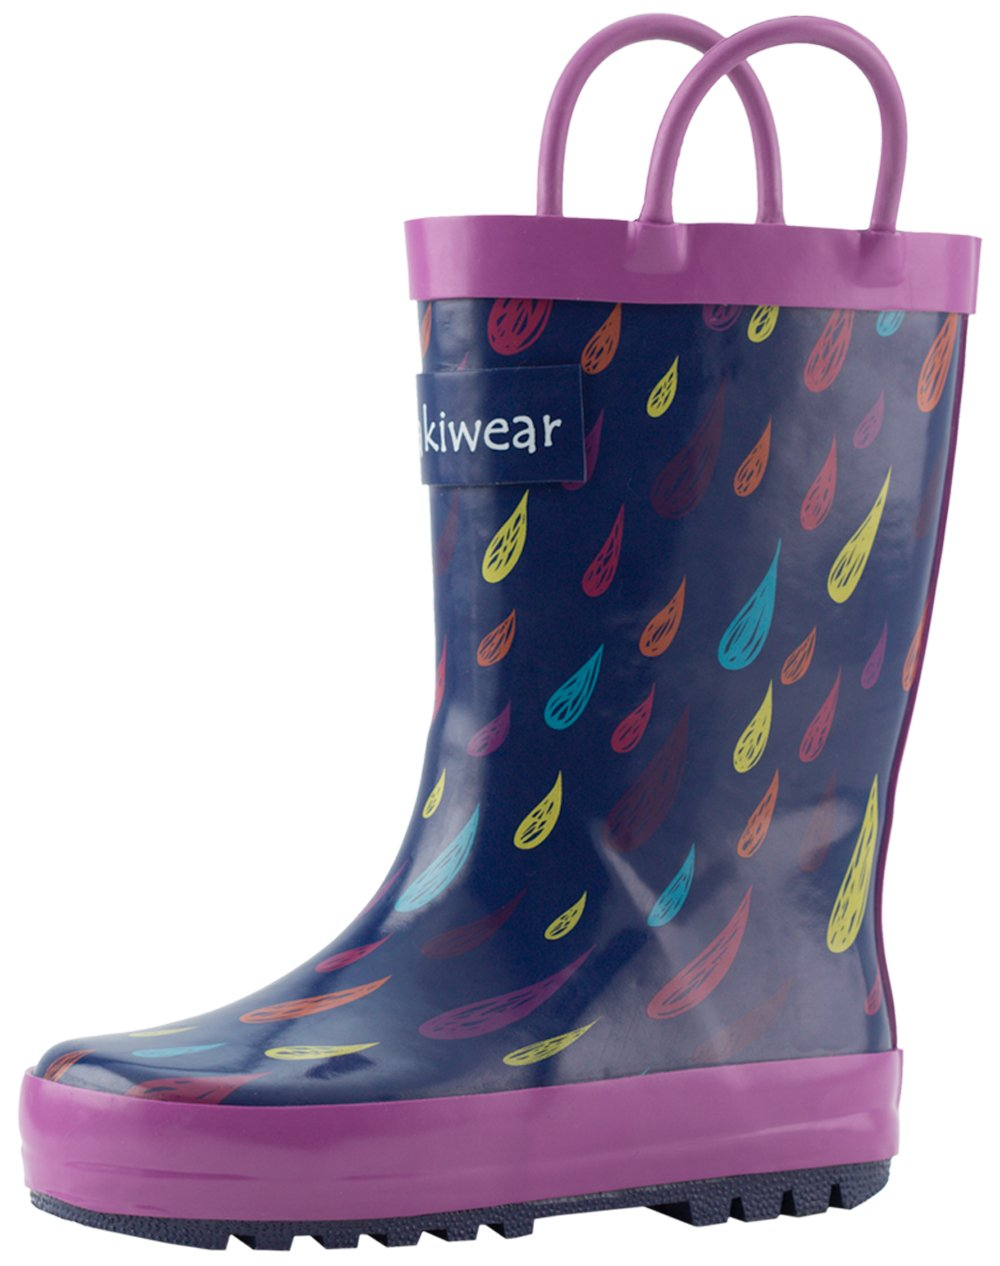 Oakiwear Loop Handle Rubber Rain Boots - Colorful Raindrops